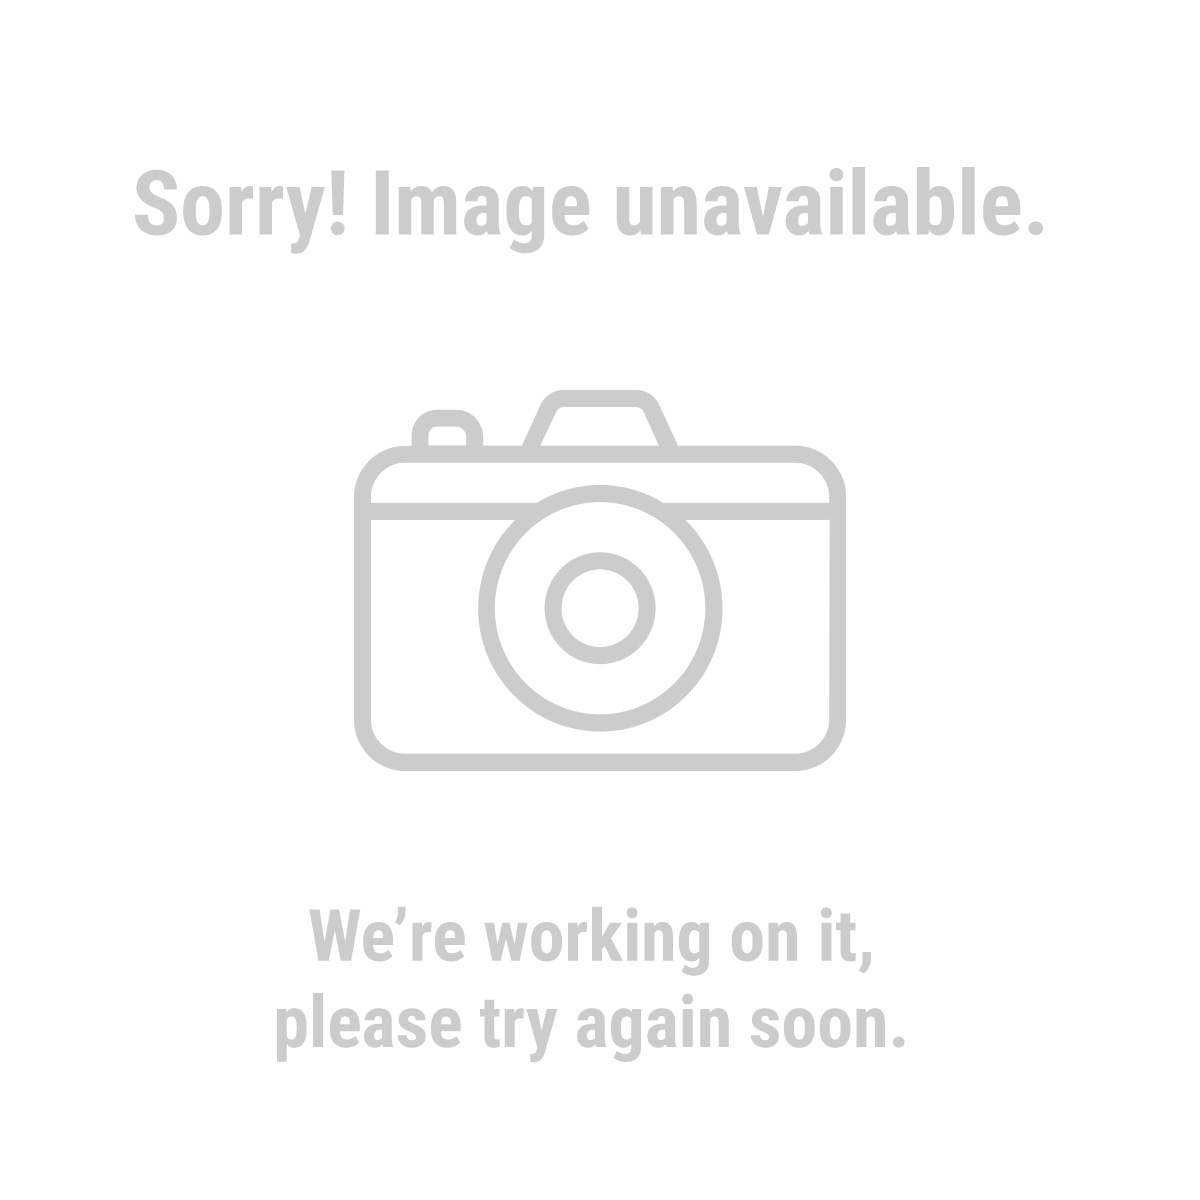 Pittsburgh Automotive 60385 440 Lb. Electric Hoist with Remote Control